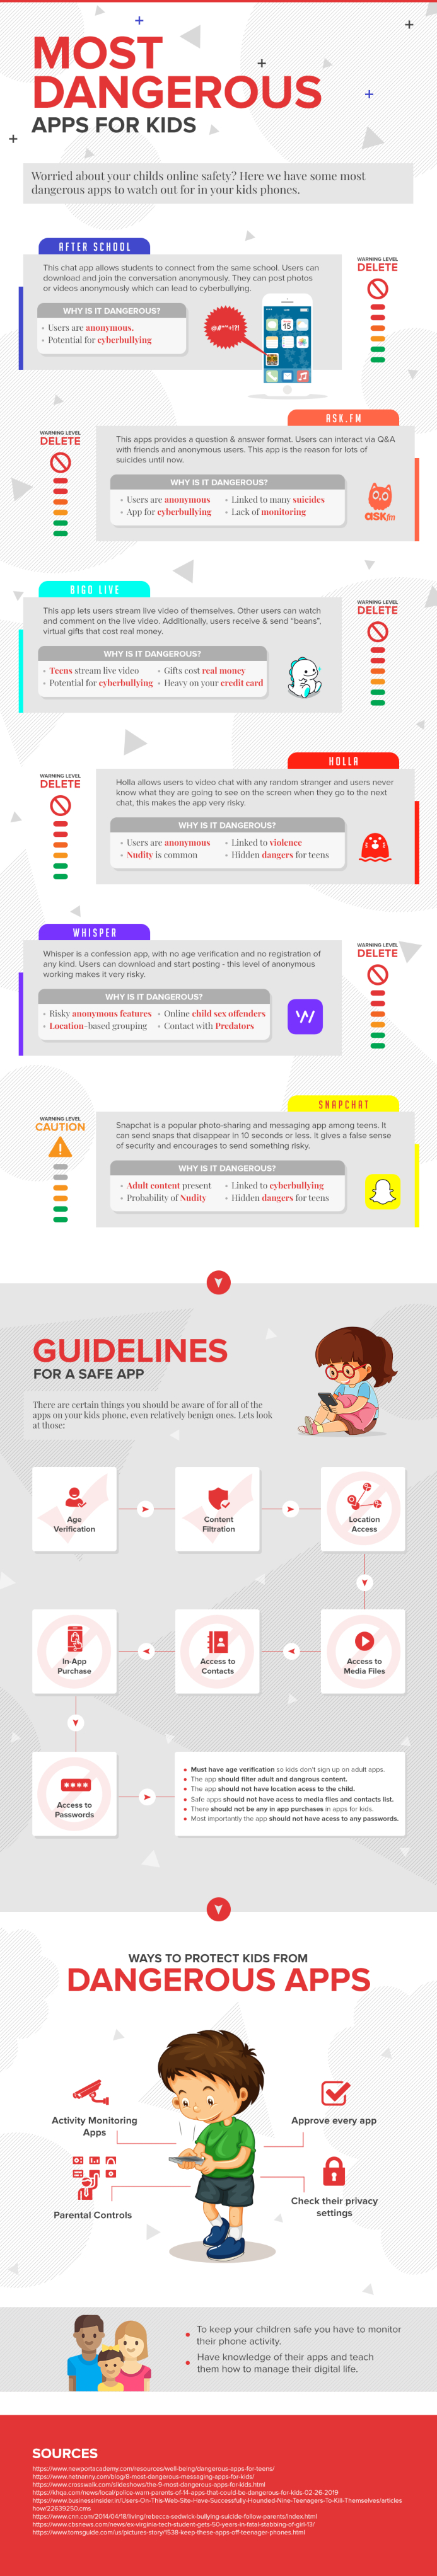 Most Dangerous Apps Infographic